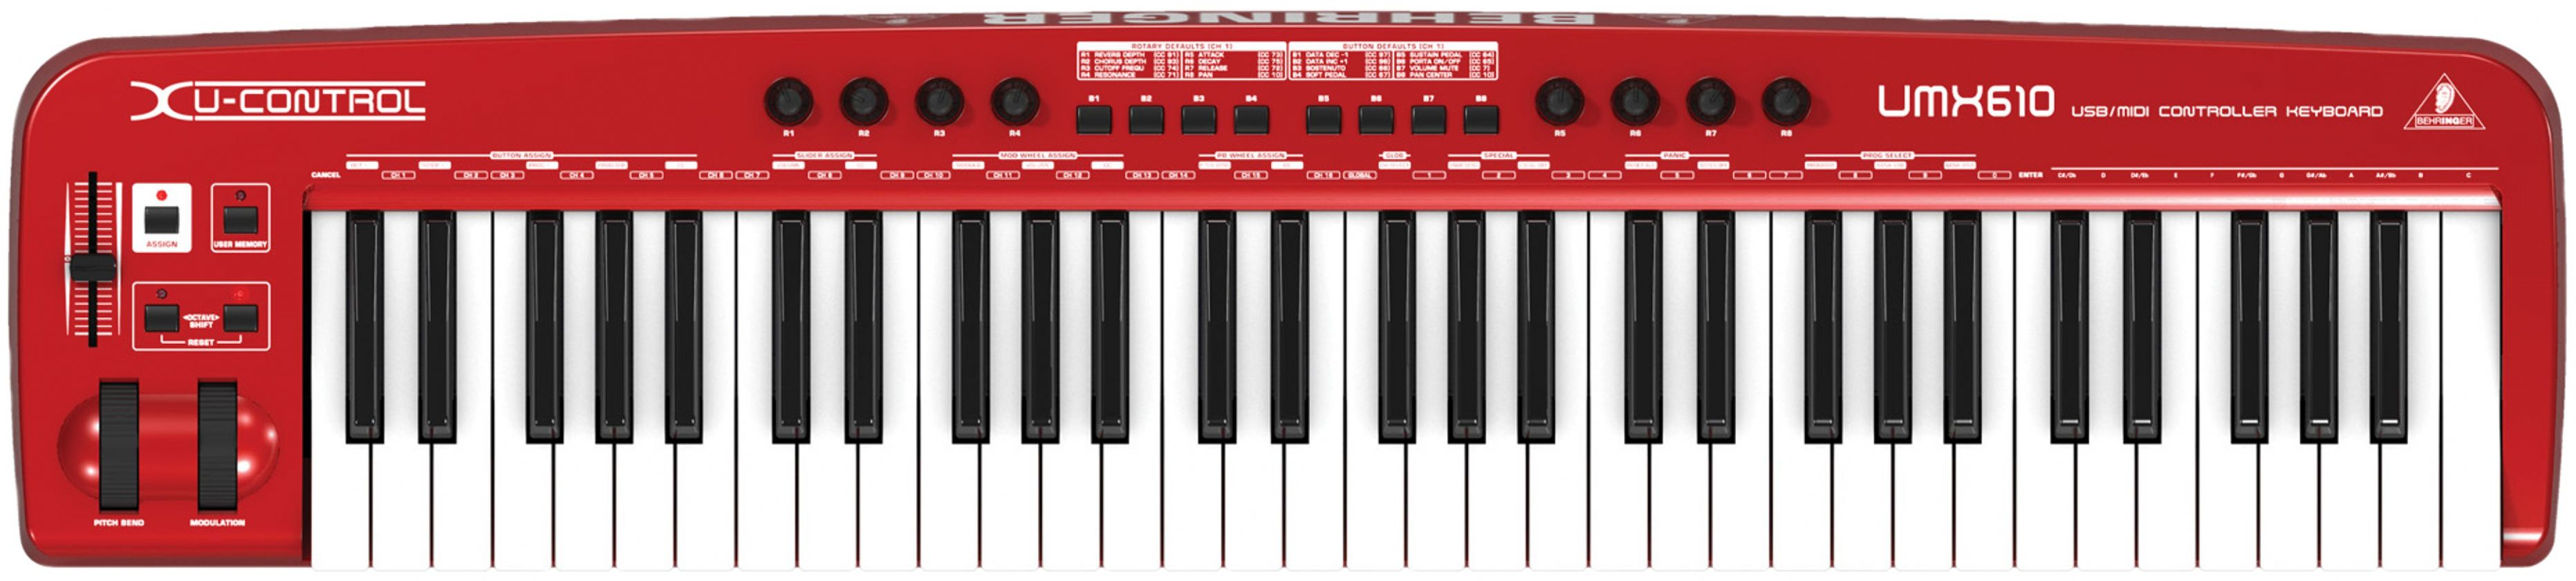 Behringher Umx610 Midi Usb 61 Key Digital Electronic